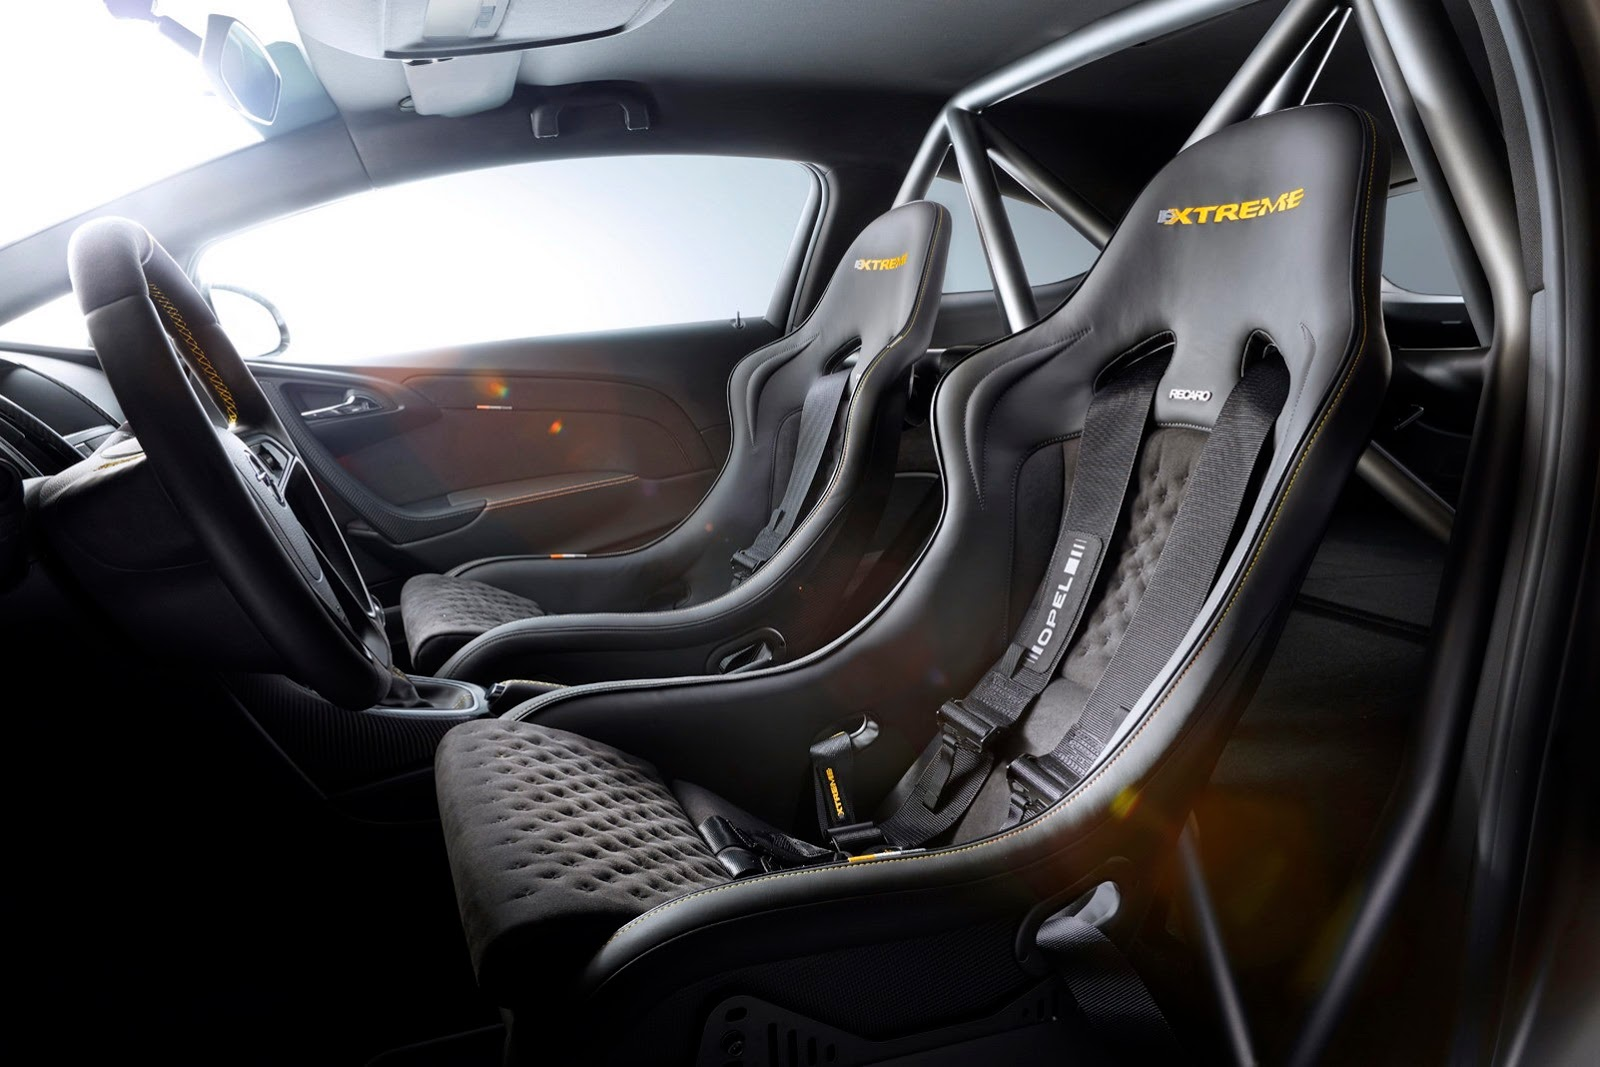 Opel-Astra-OPC-Extreme-7[2]